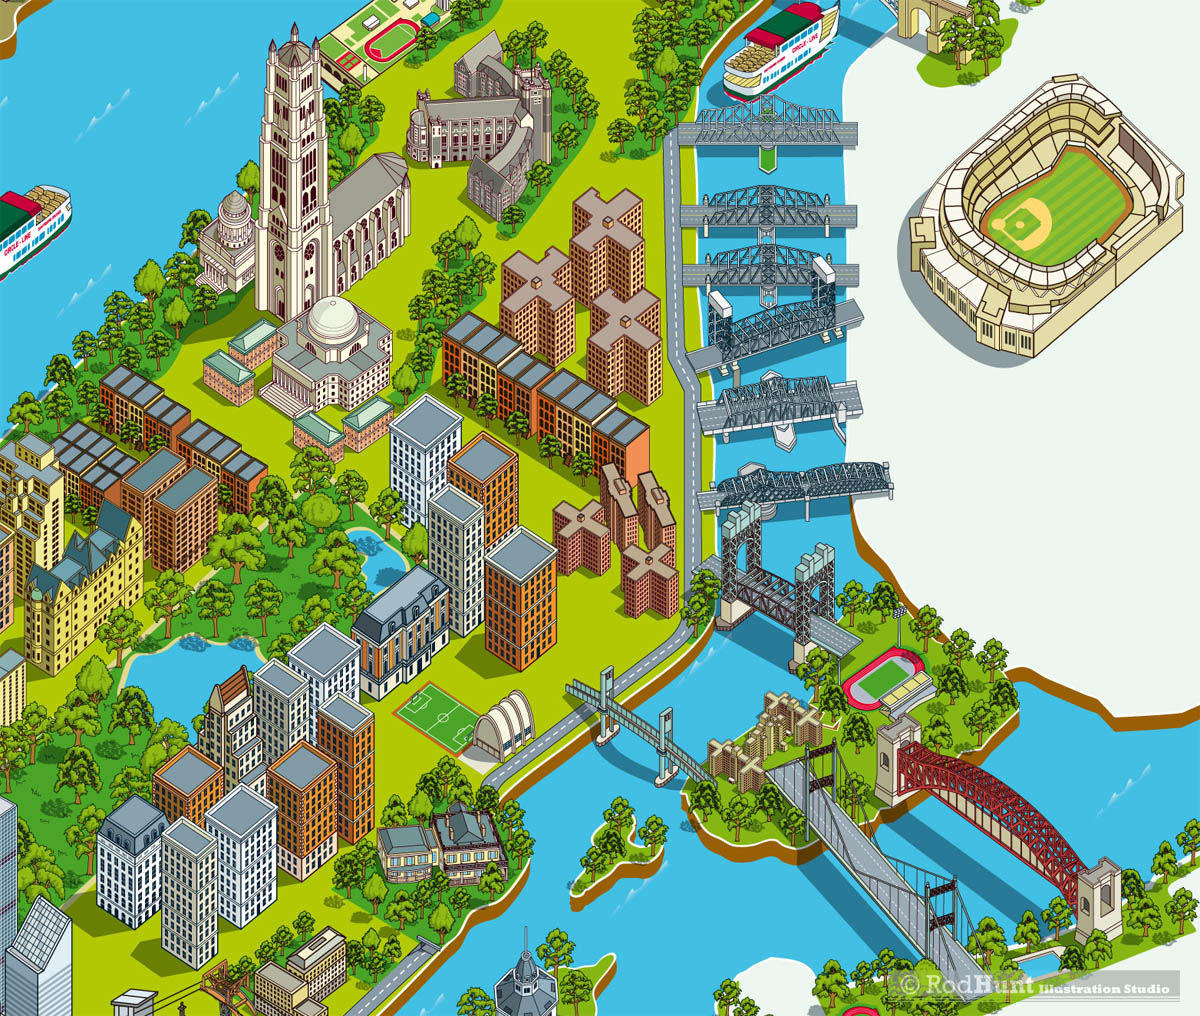 Map Of New York Suburbs.Circle Line Sightseeing Cruises New York Map 2017 On Behance